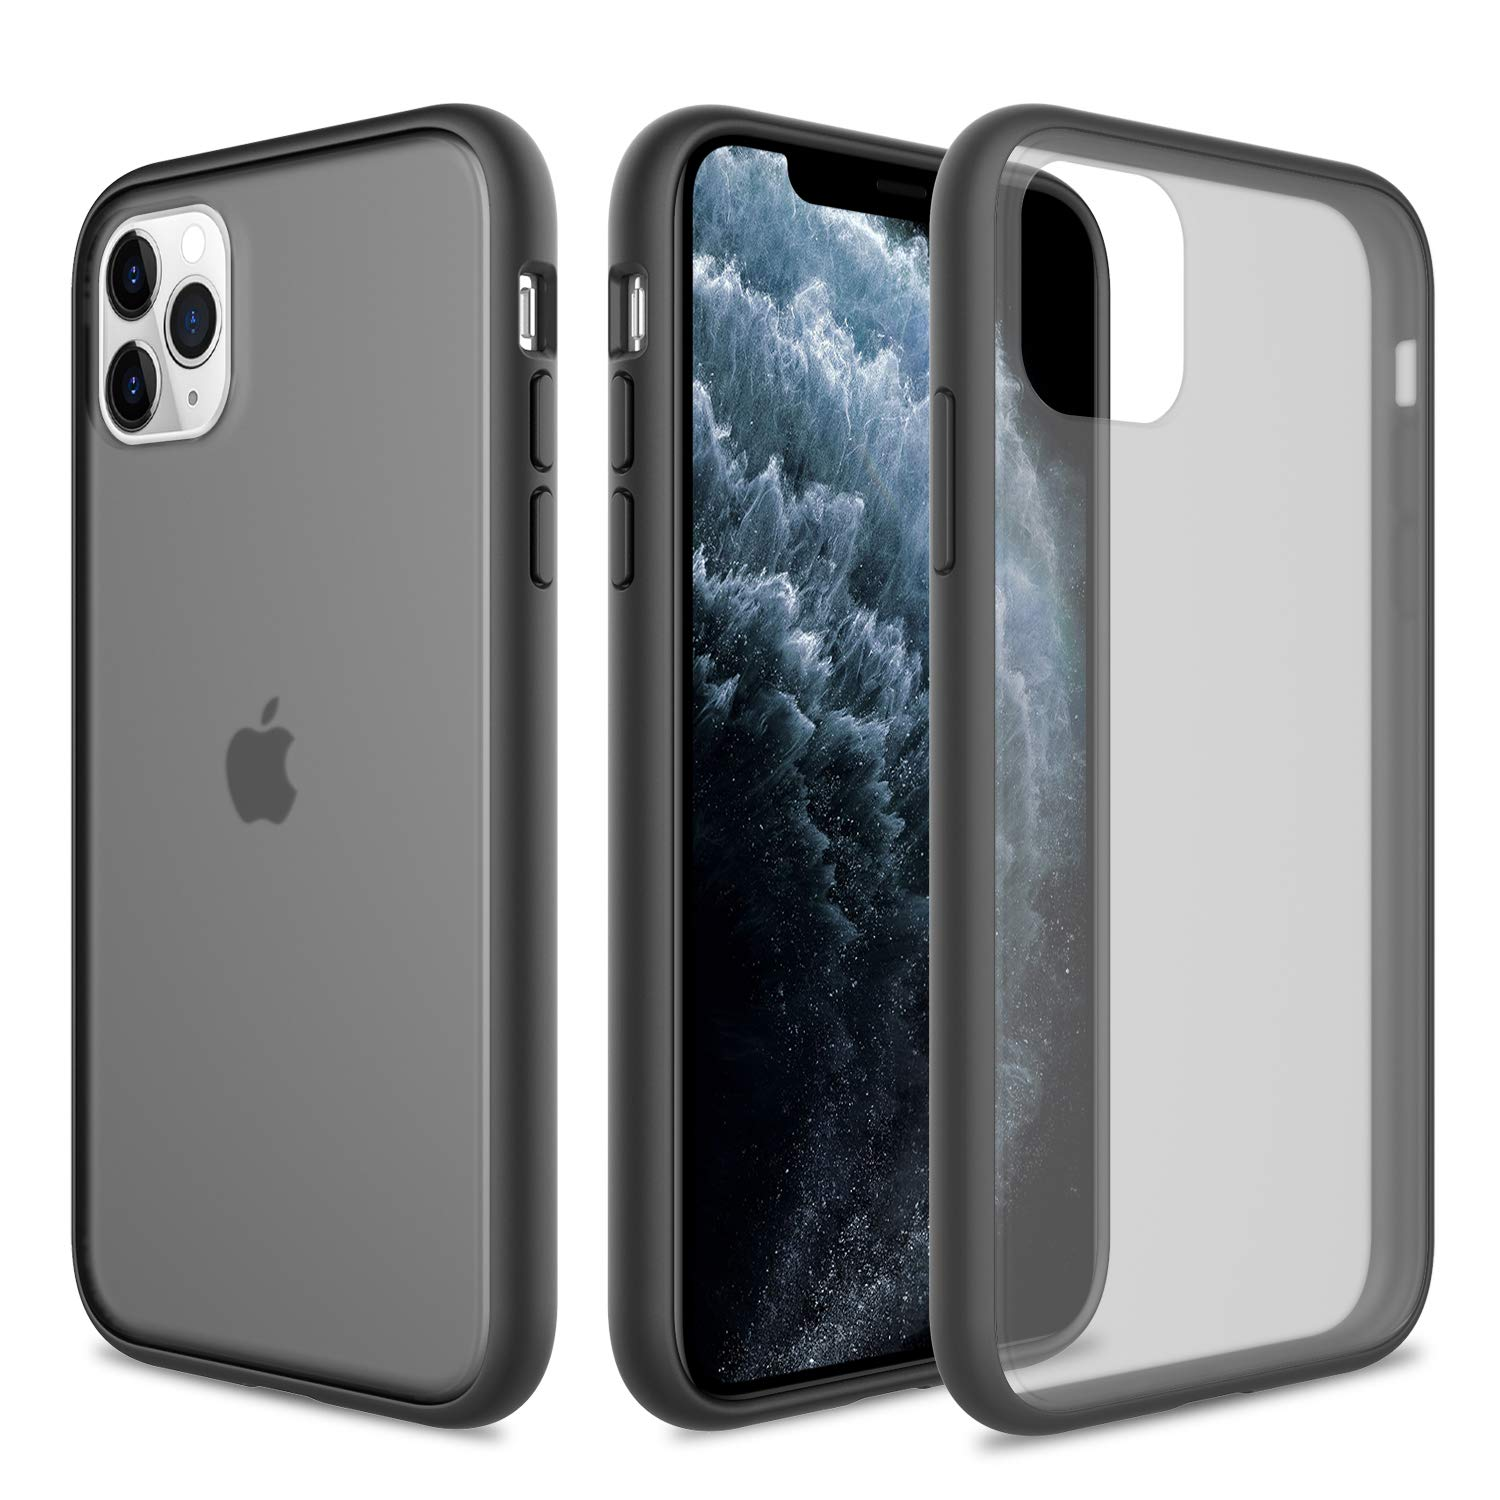 Elegant Choise for iPhone 11 Pro Max Case 6.5 Inch (2019) Support Wireless Charger Hybrid Clear Ultra Thin Slim Fit Frosted Translucent Shockproof Anti-Scratch Non-Slip Rugged Protective Cover(Black)